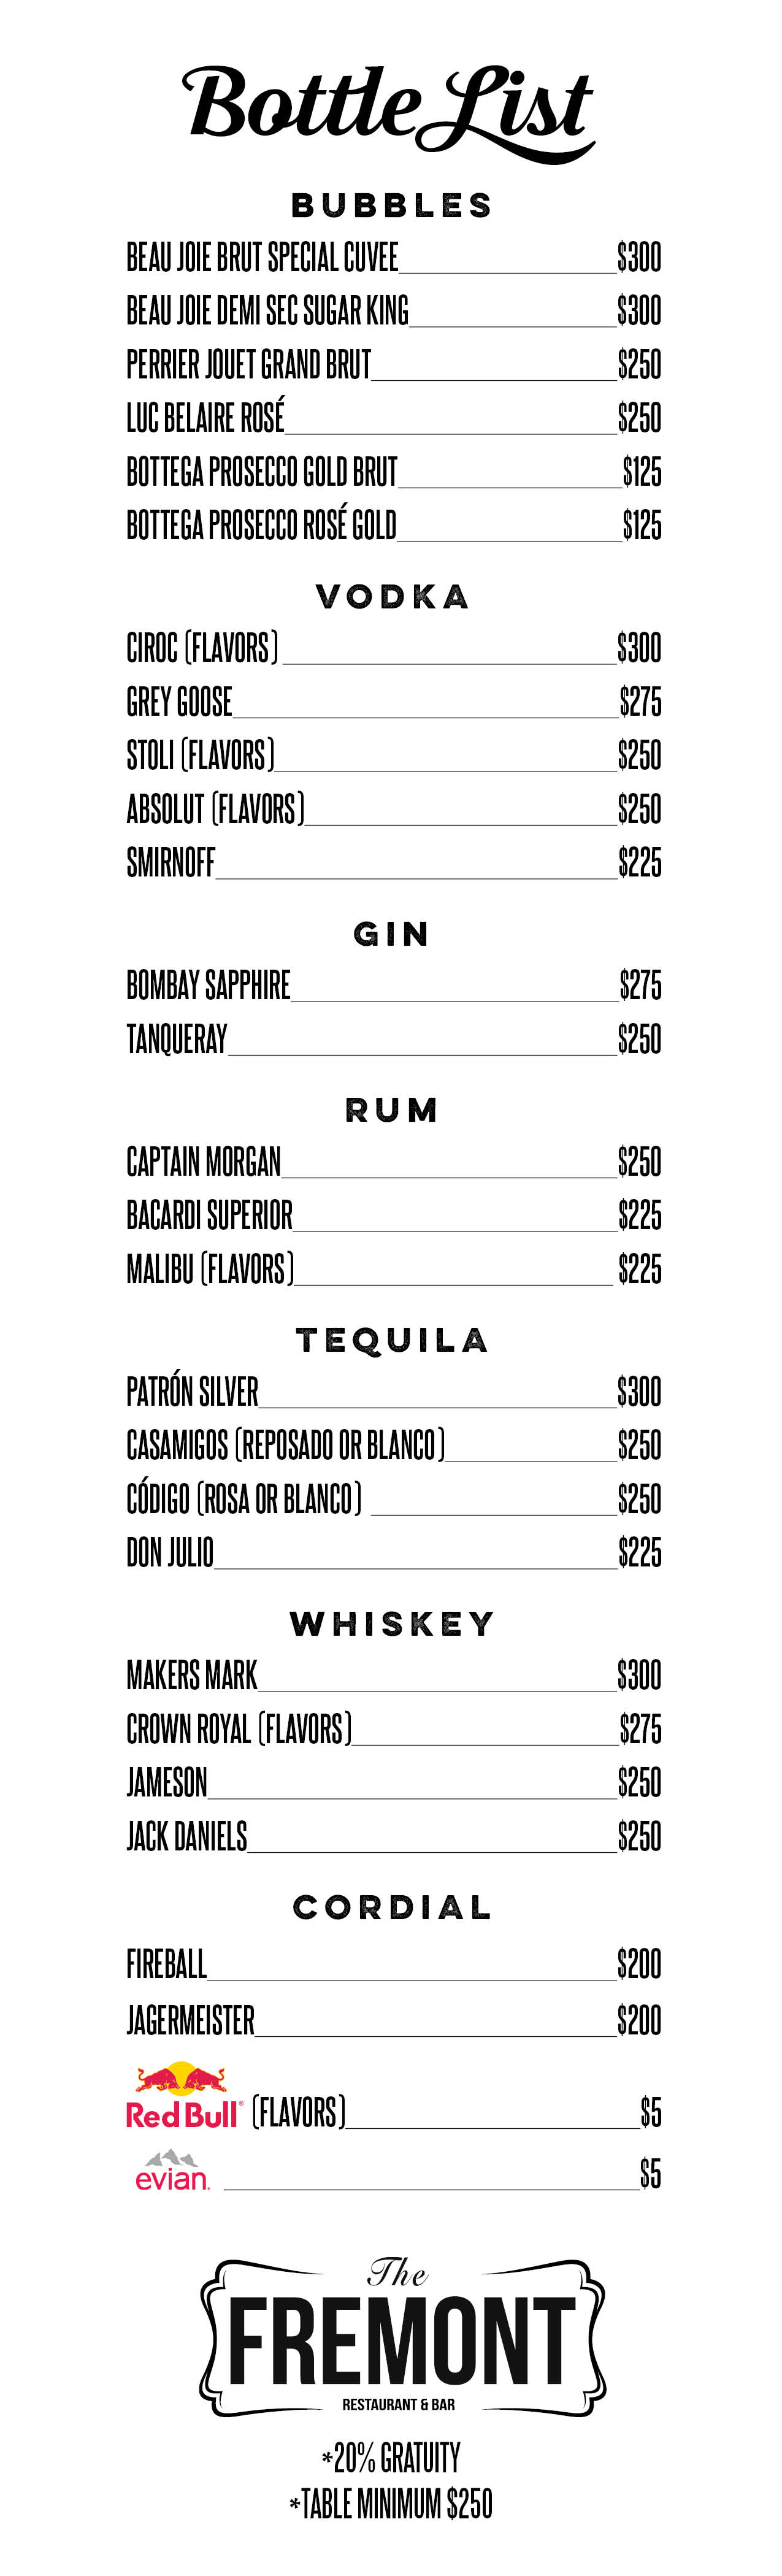 BOTTLE SERVICE MENU 8.10.19.jpg